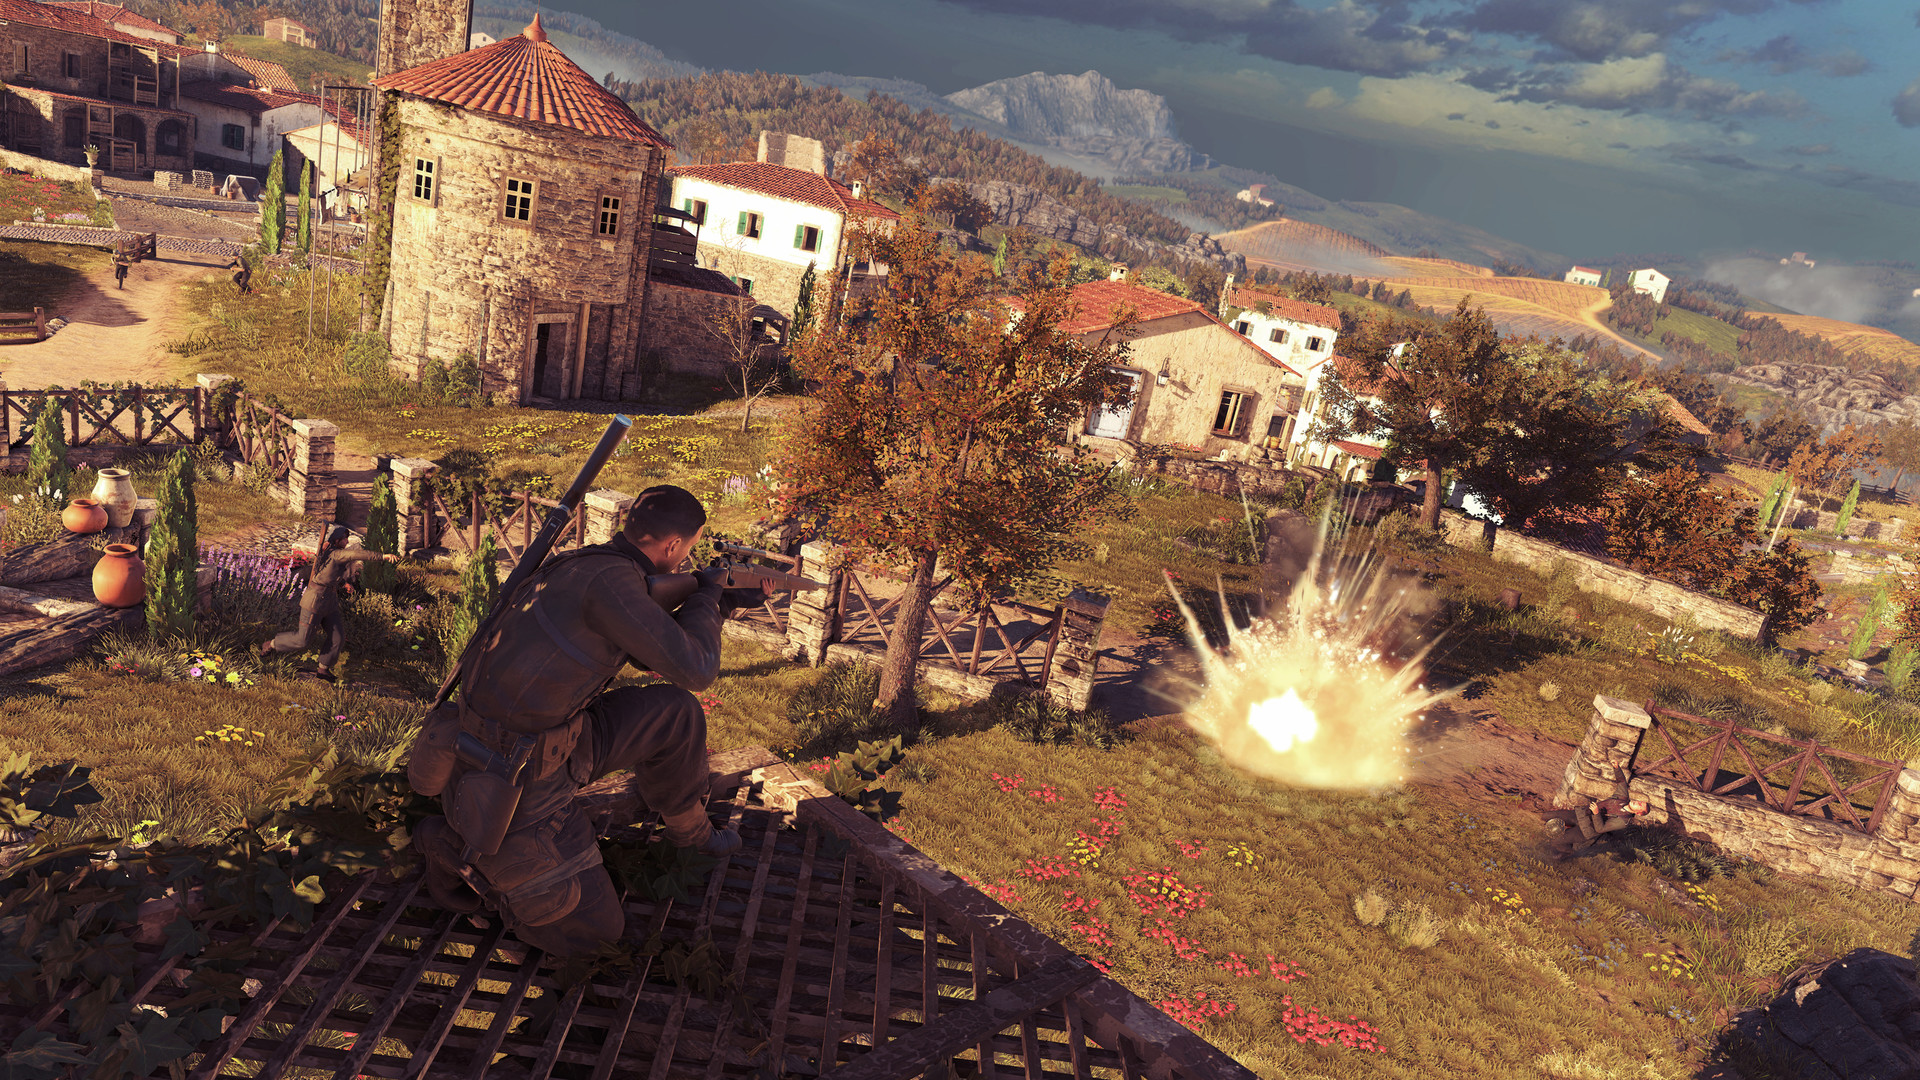 download sniper elite 4 deluxe edition v1.4.1 inc. all dlcs & updates season pass bonus + dedicated server repack - corepack singlelink iso rar part google drive direct link uptobox ftp link magnet multiup mirrorace magnet torrent high seed thepiratebay kickass alternative